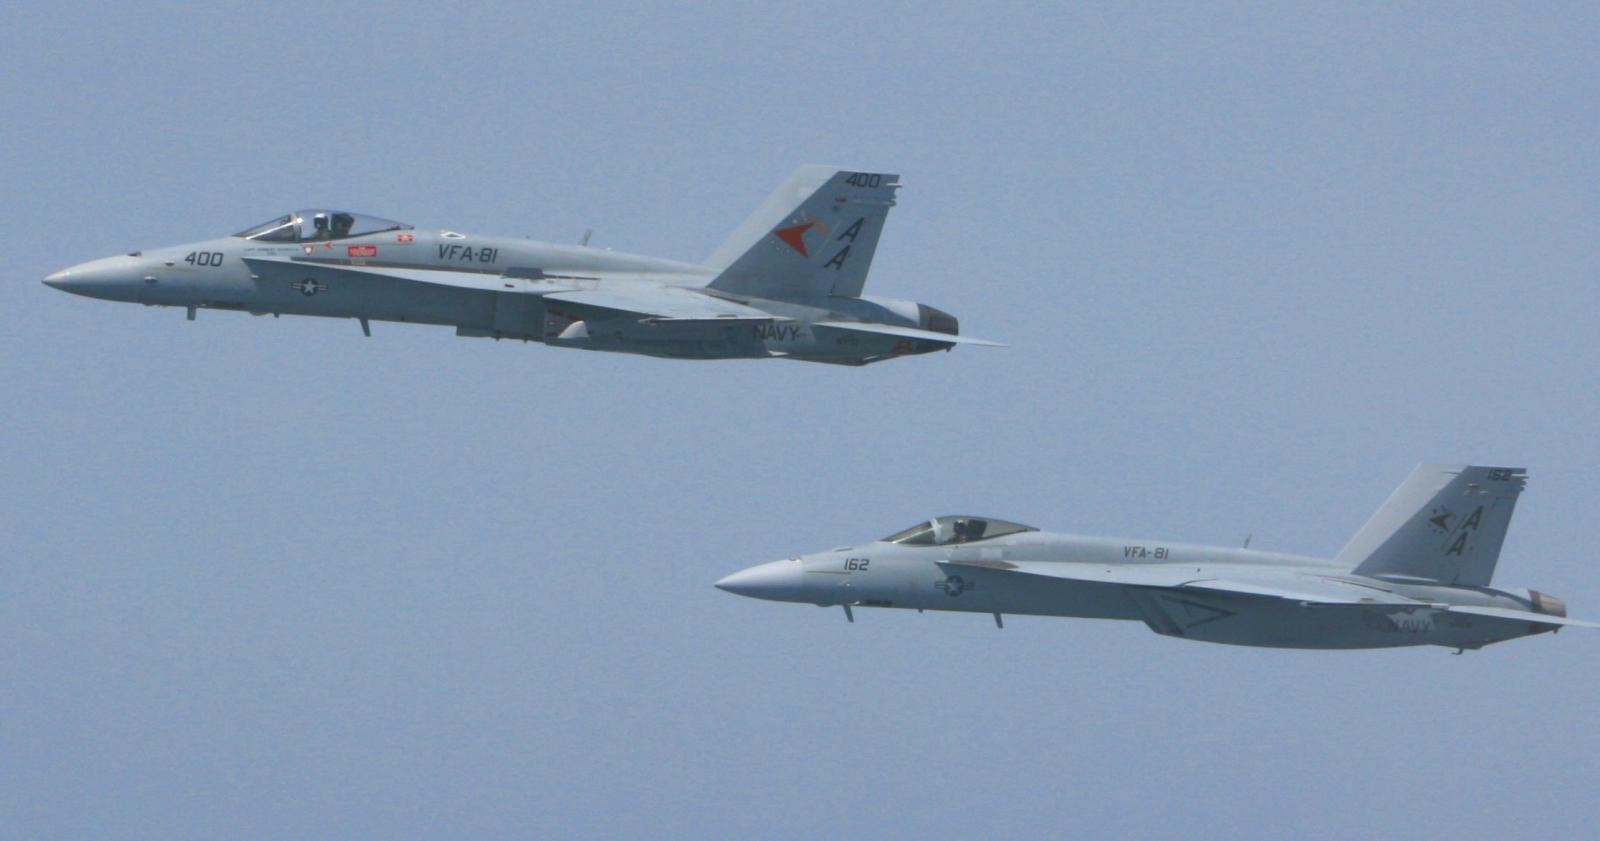 F-18C (400) and F-18E (162) later became 200